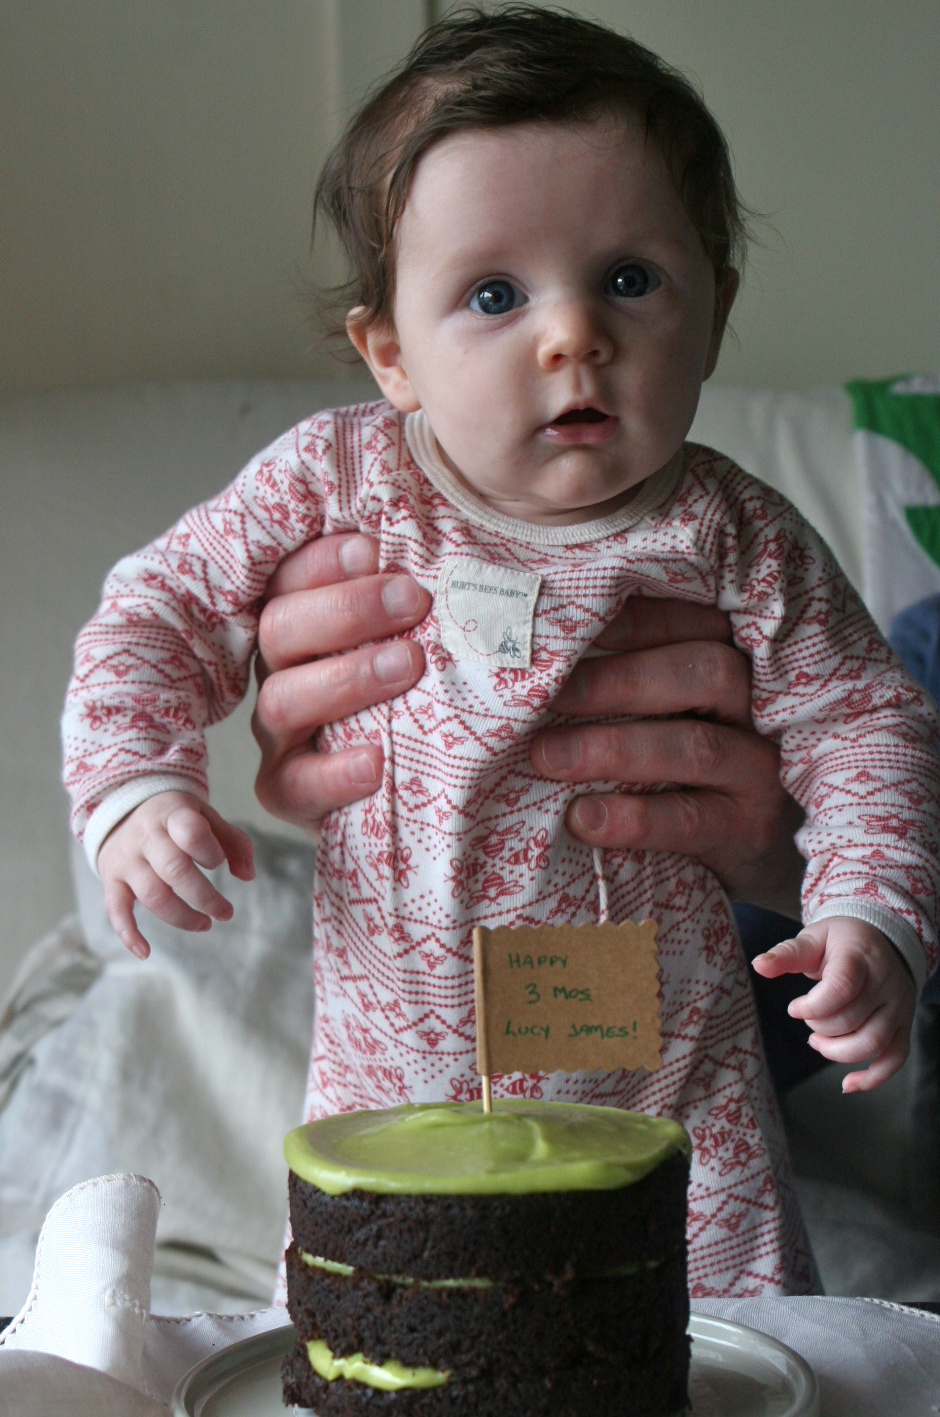 Lucy James - 3 months old